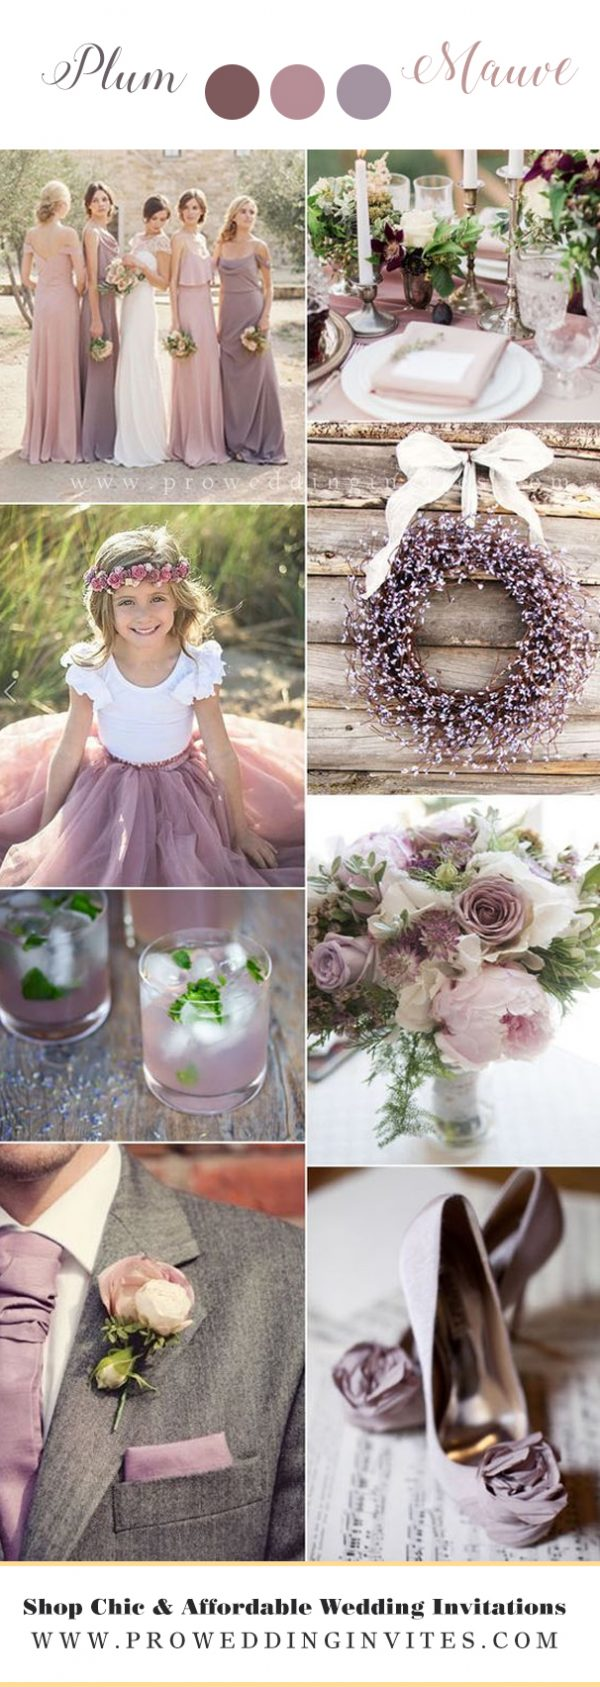 Plum & Mauve wedding colors